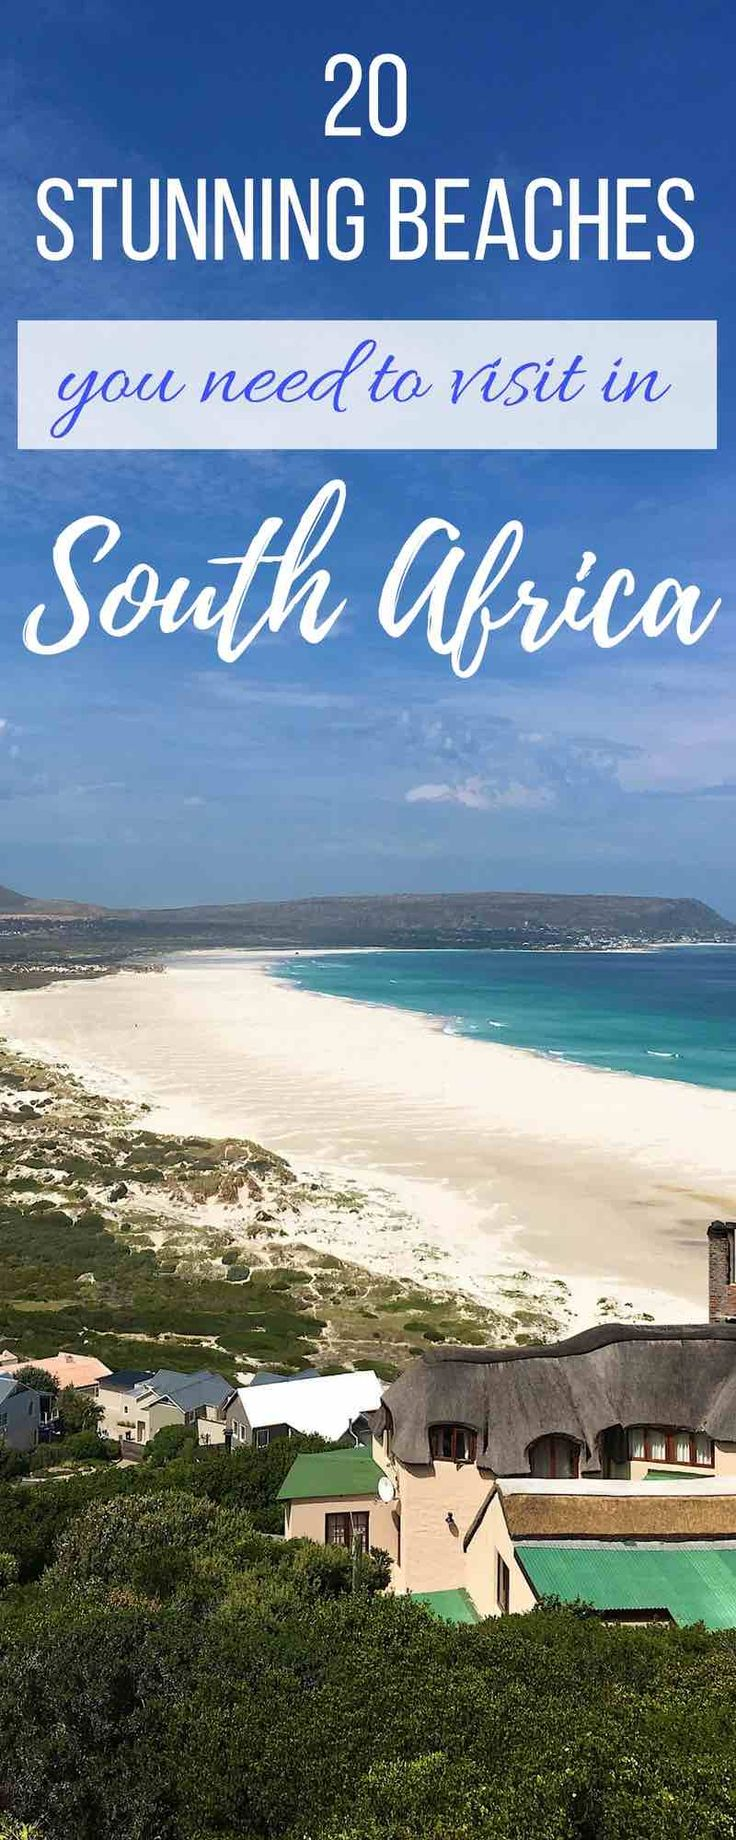 20 Stunning beaches you need to visit in South Africa